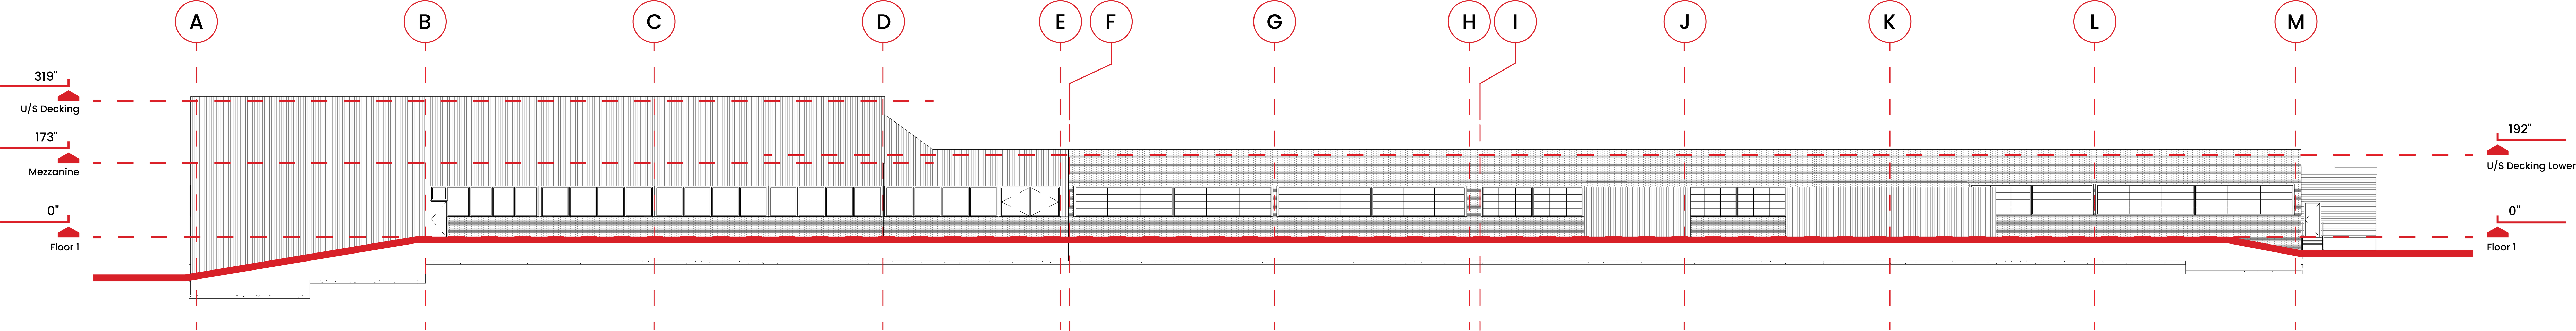 an illustrated 2D elevation section of an industrial building.